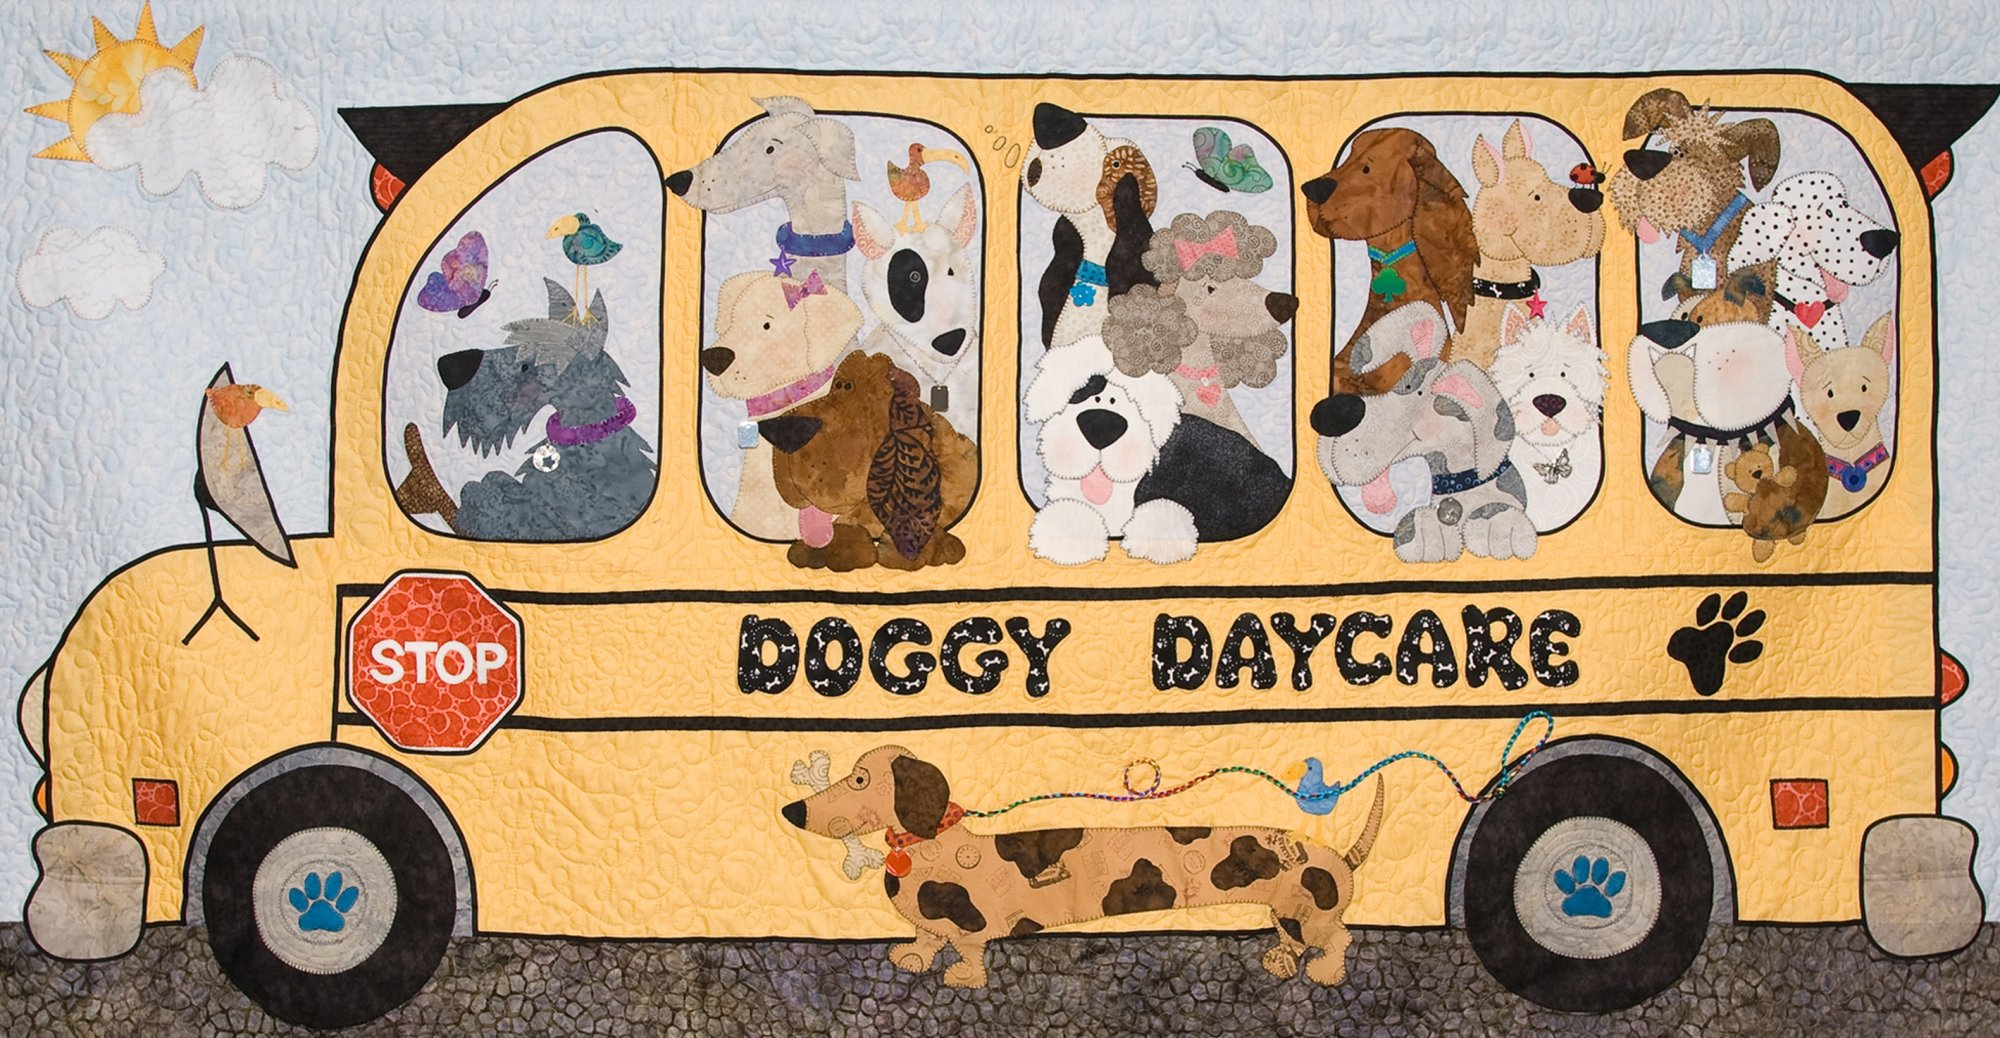 HBH108 Doggy Daycare